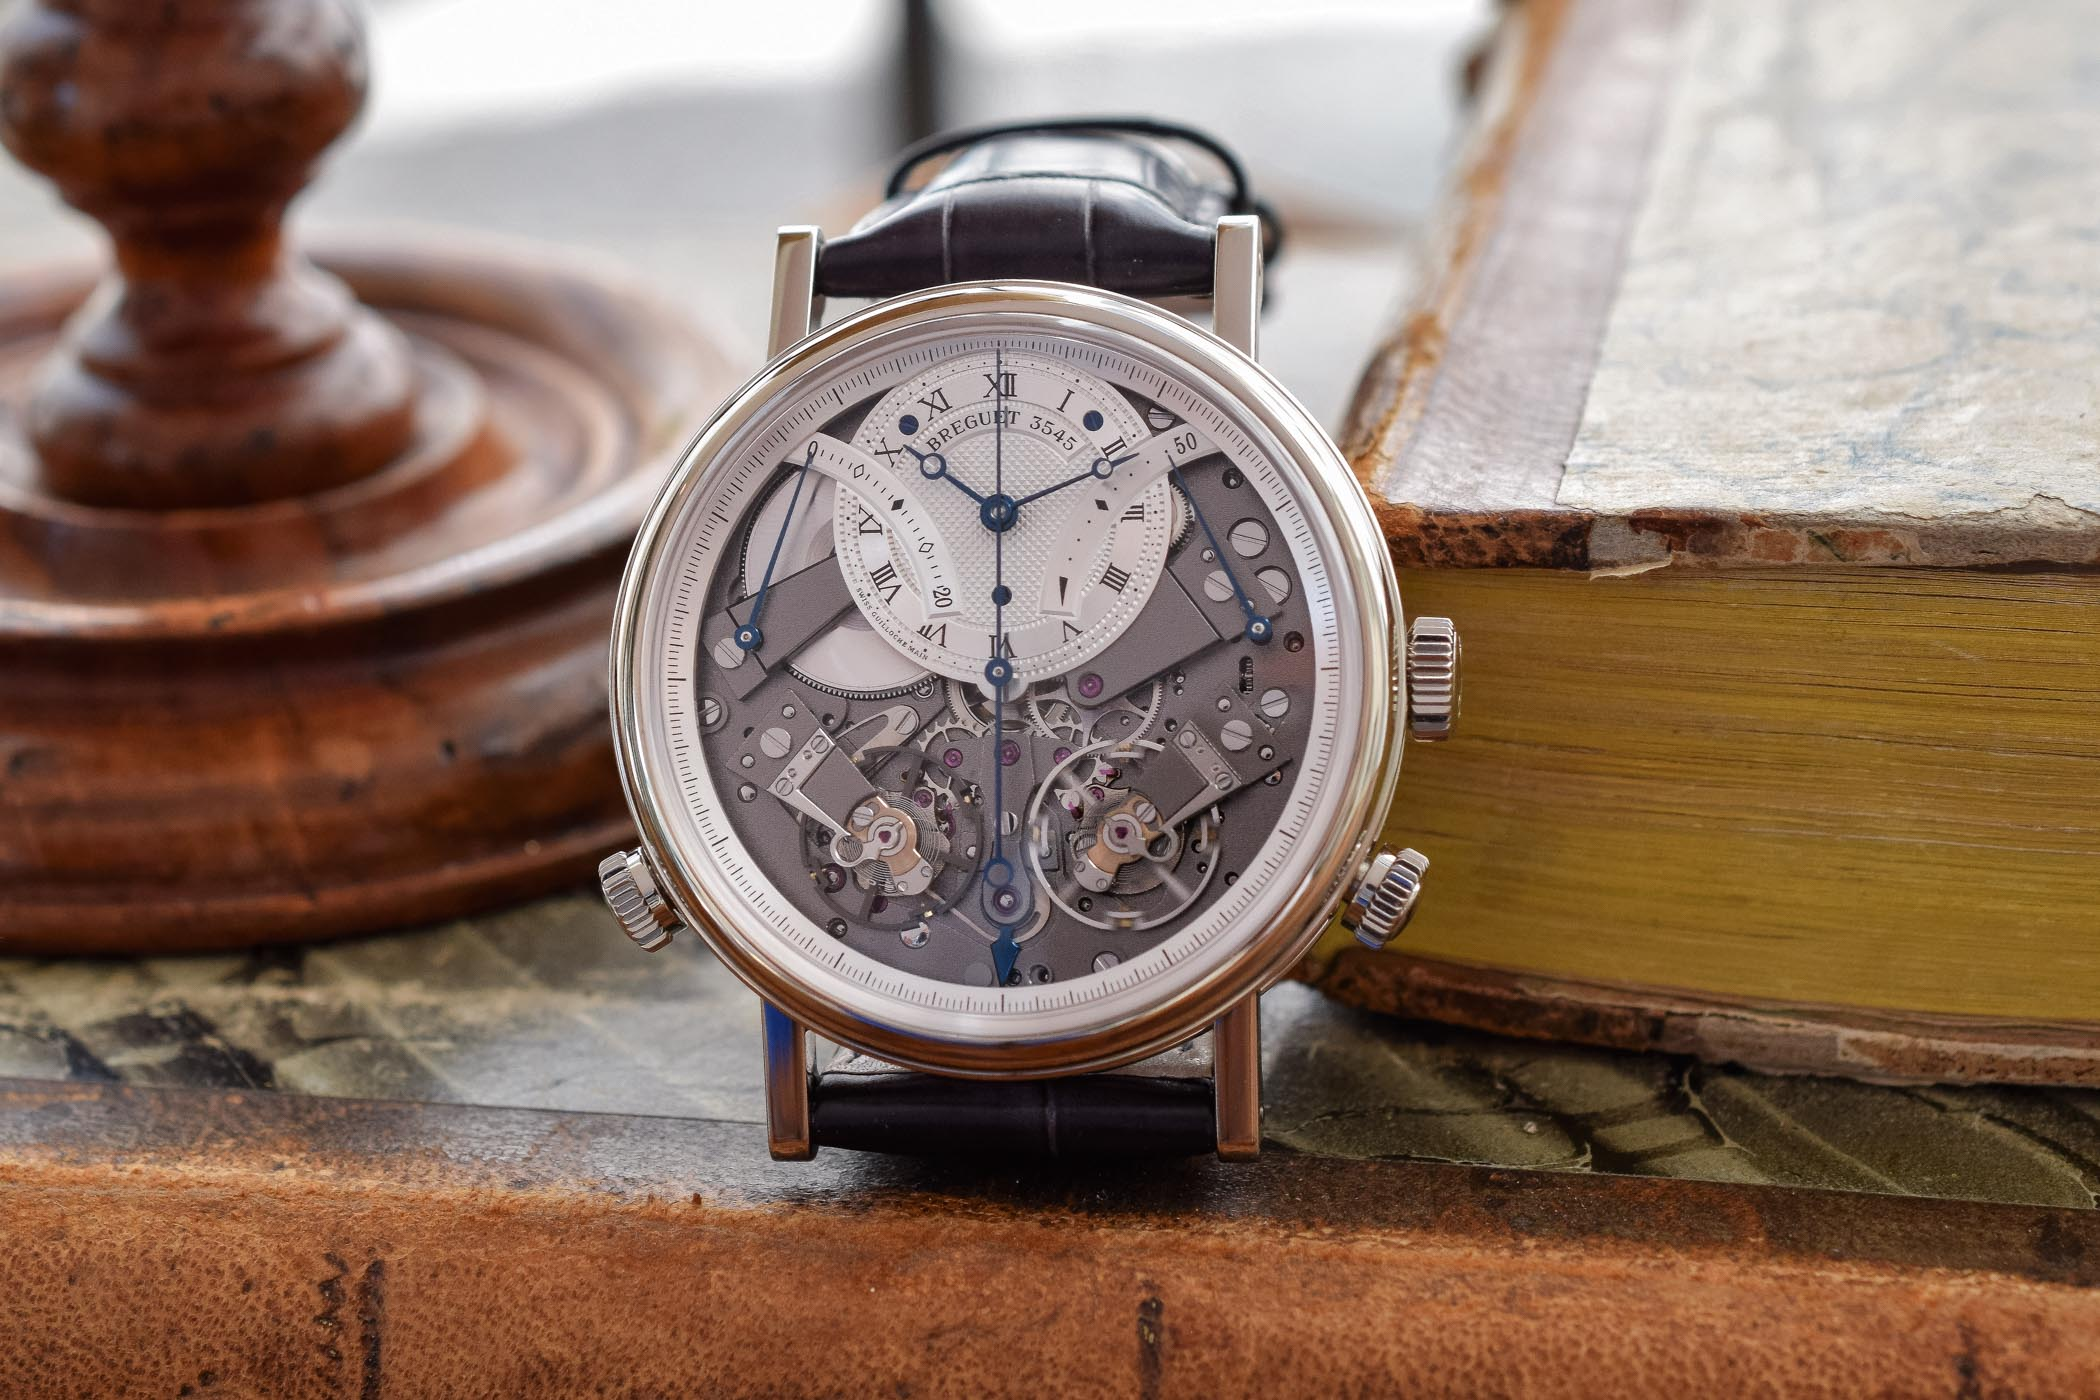 Breguet Tradition Chronograph Independent 7077 - 1